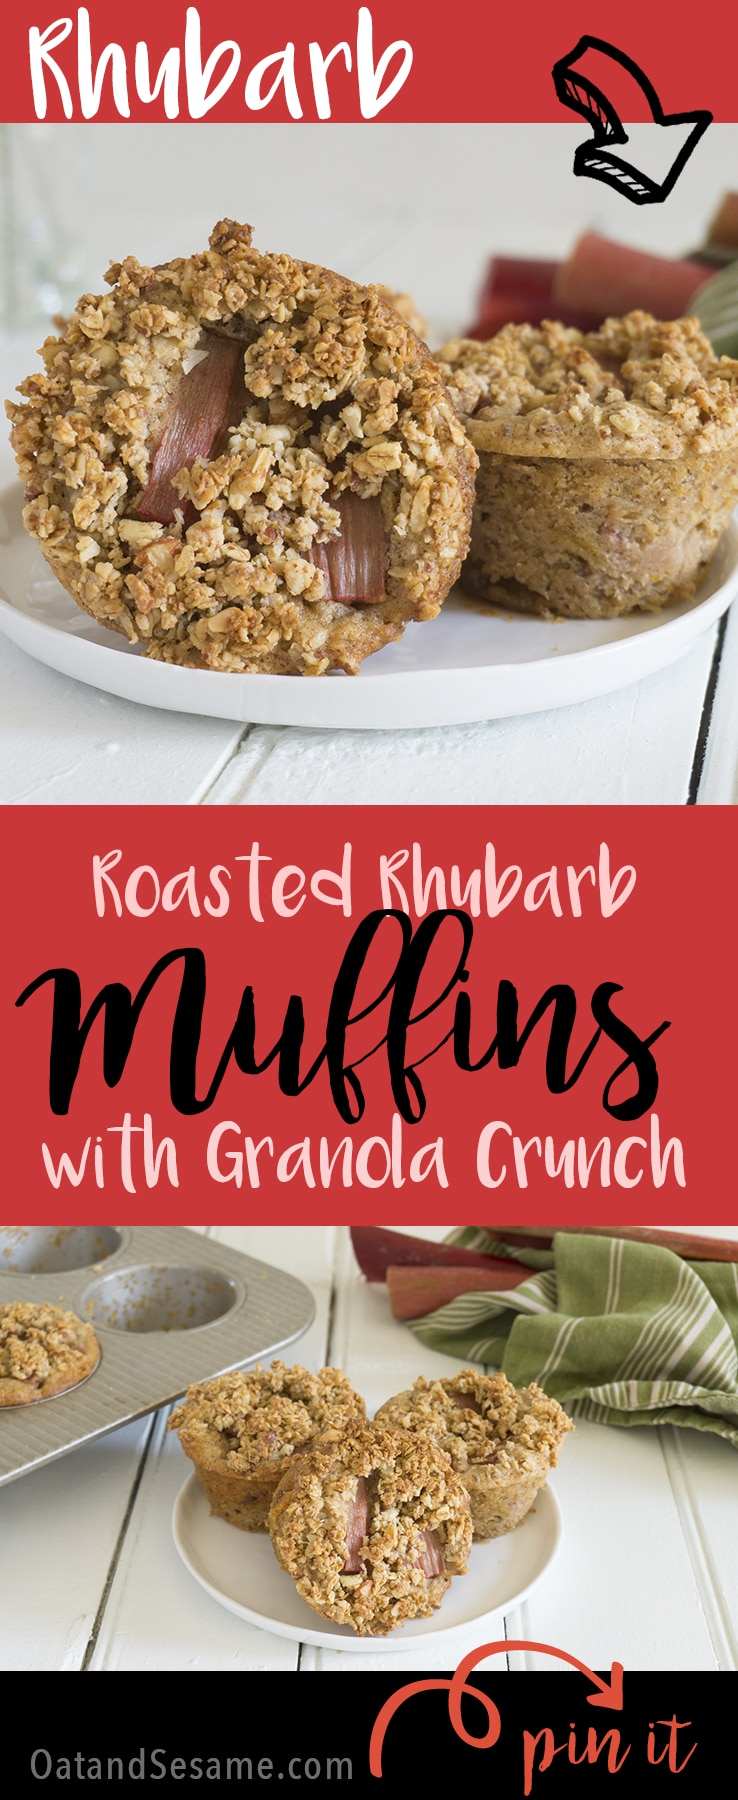 Roasted Rhubarb Muffins with a granola crunch topping! These muffins finally came out exactly how I wanted them after several renditions. Totally Gluten Free + Vegan | RHUBARB | MUFFINS | BREAKFAST | recipe at OatandSesame.comRecipe at OatandSesame.com